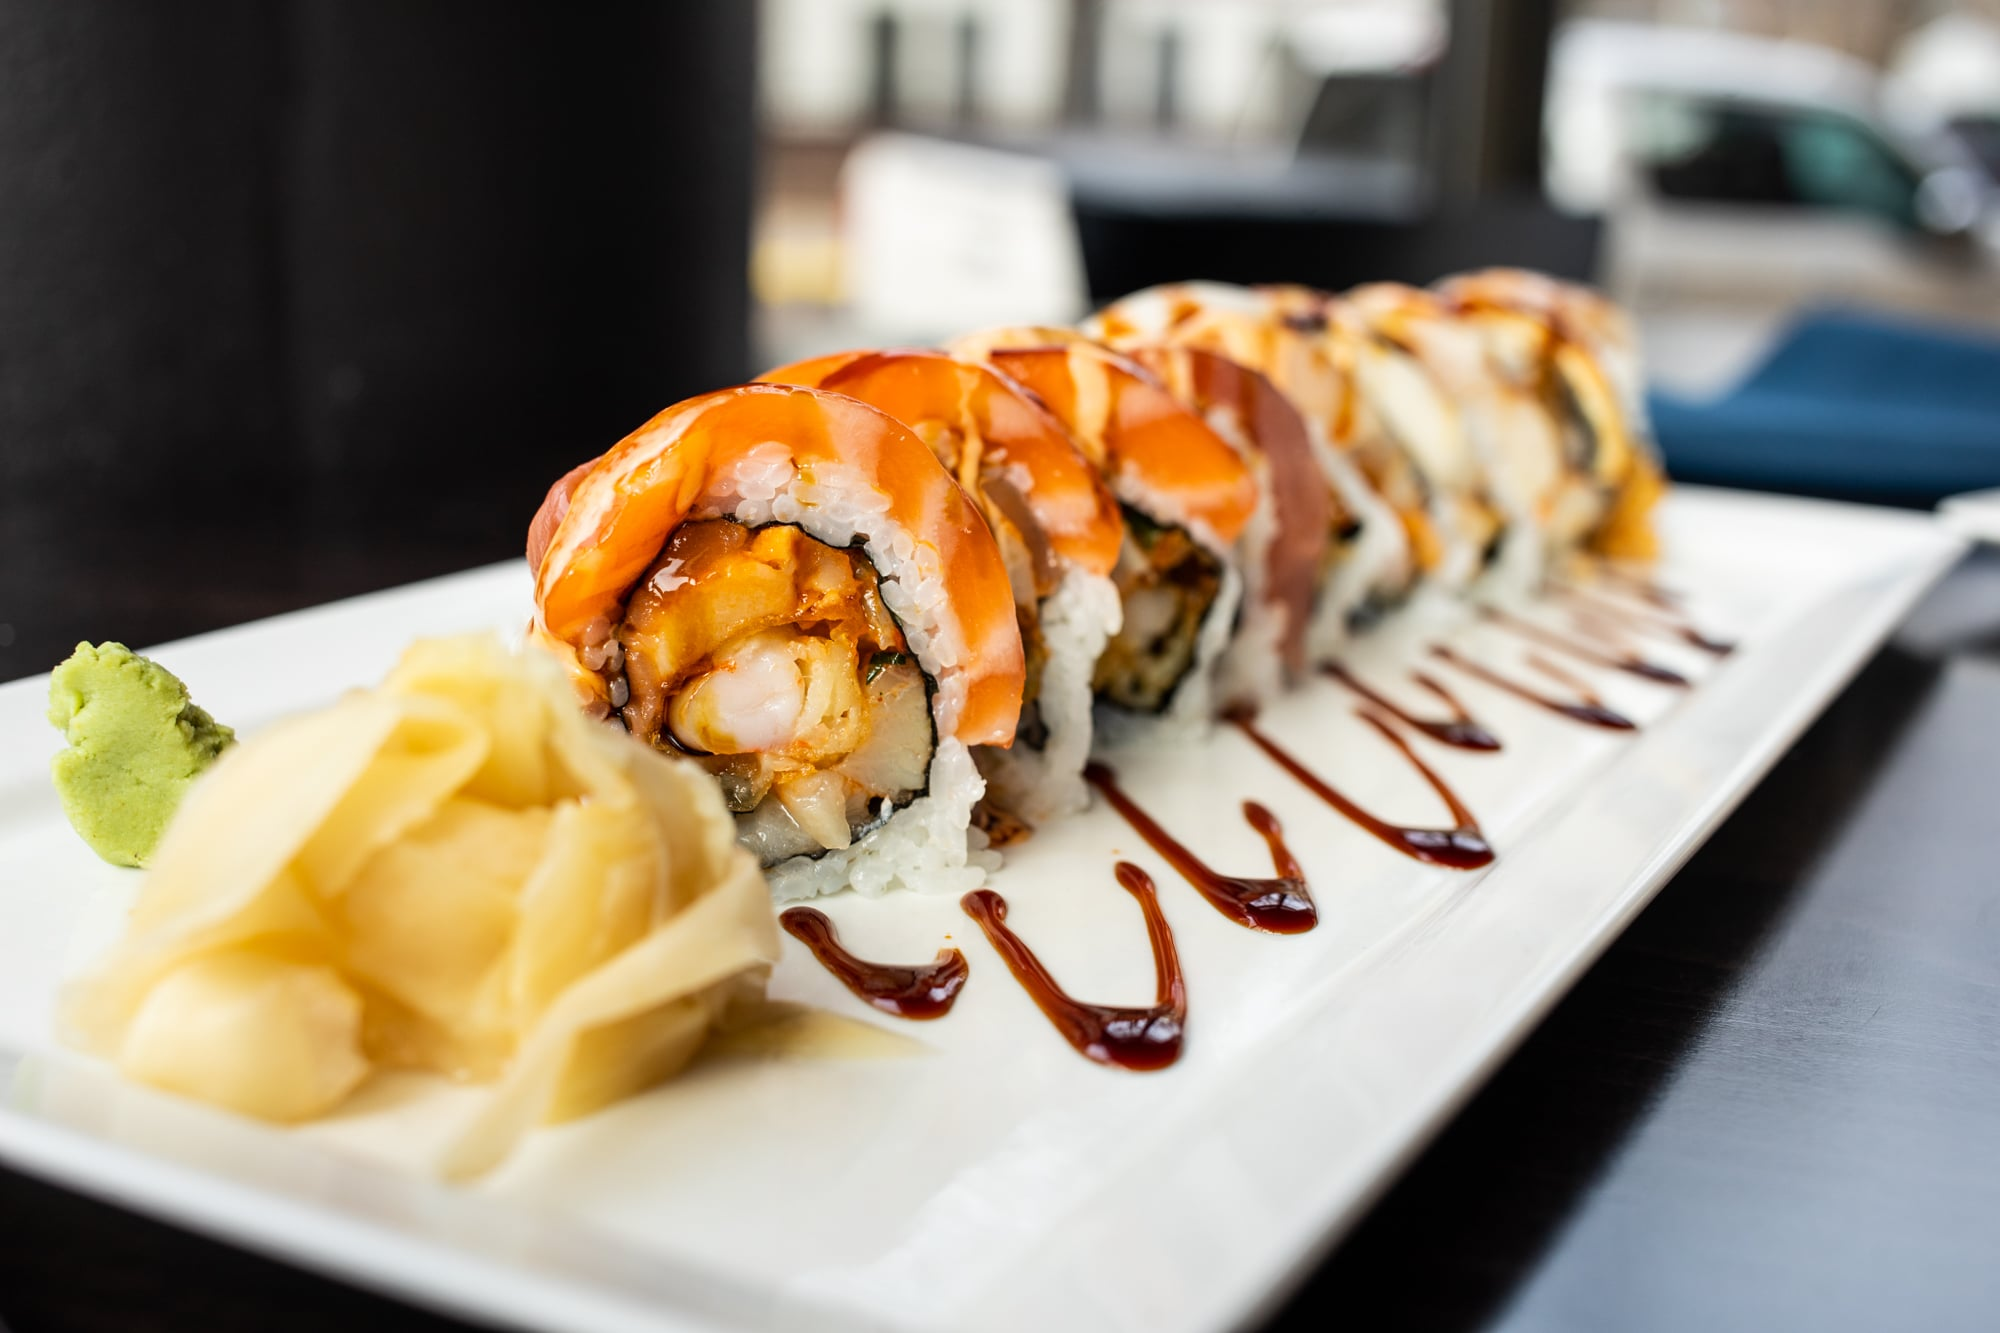 Review Yumi S Big Gamble The Silliness Of Massive Stunt Sushi Is Self Evident But The Dish Has Many Layers